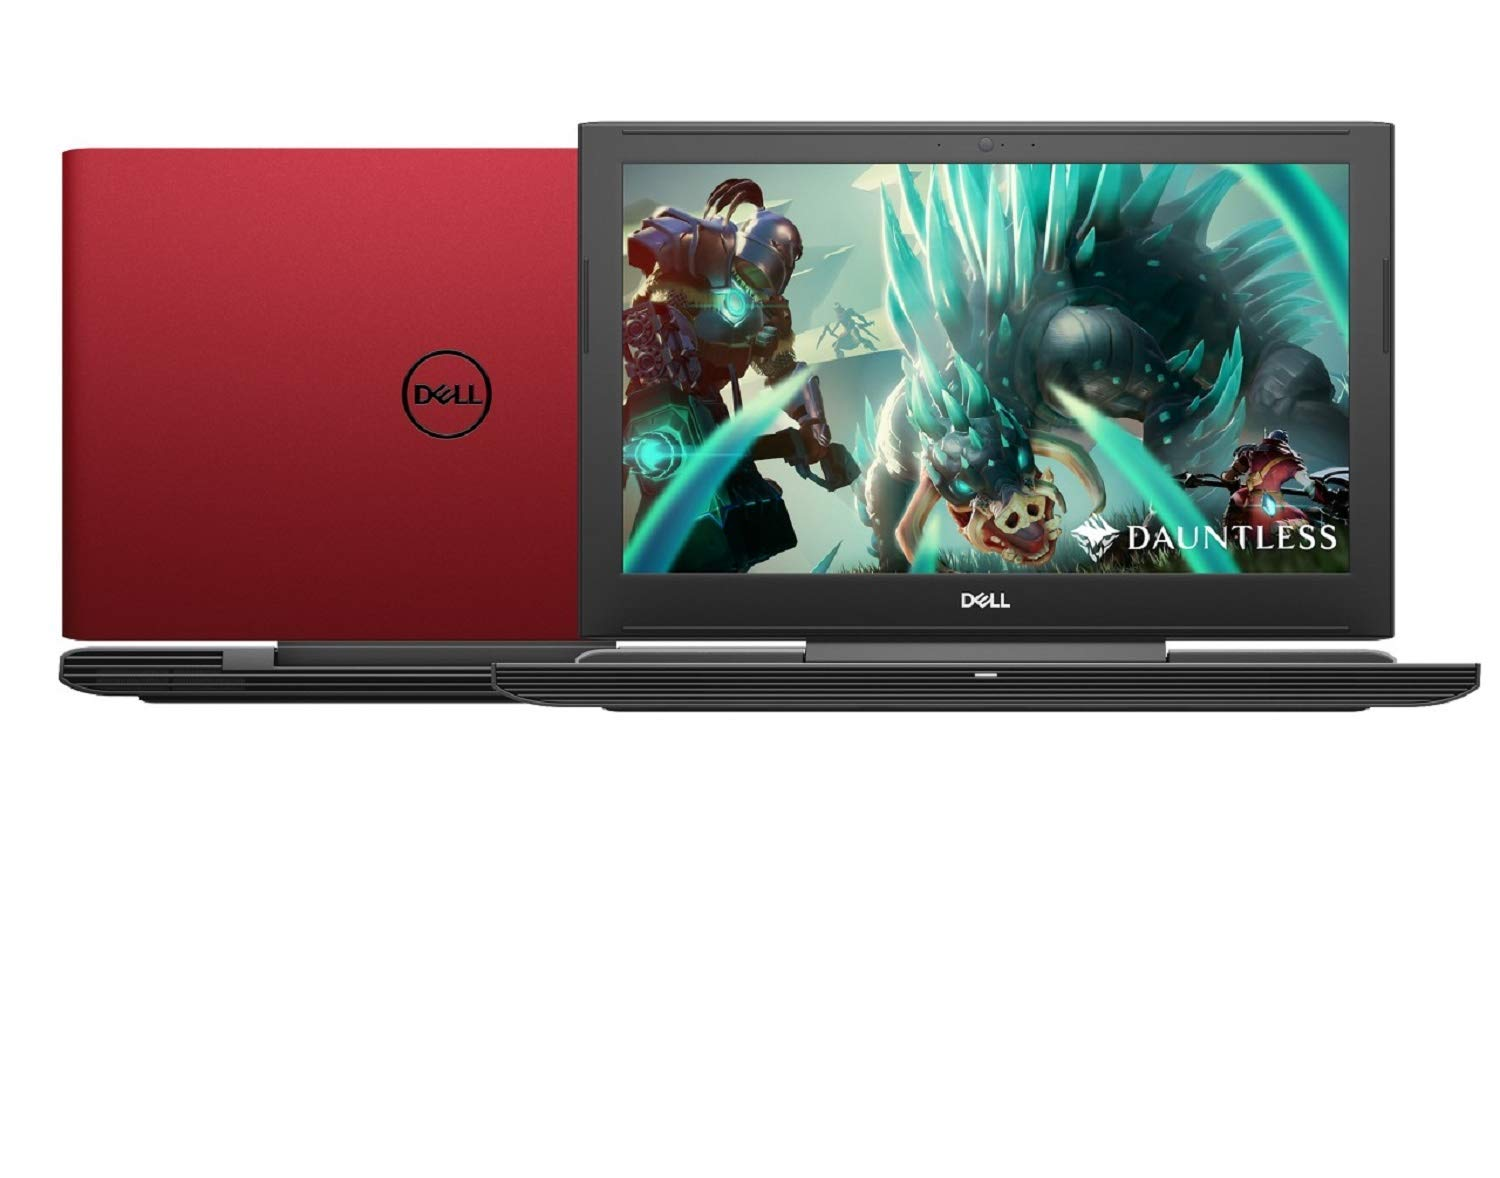 "Dell G5 15 Premium Gaming and Business Laptop (Intel 8th Gen i7-8750H Quad-Core, 16GB RAM, 2TB HDD + 1TB SSD, 15.6"" Full HD 1920 x 1080, GeForce GTX 1050 Ti 4GB, Win 10 Home) Red"